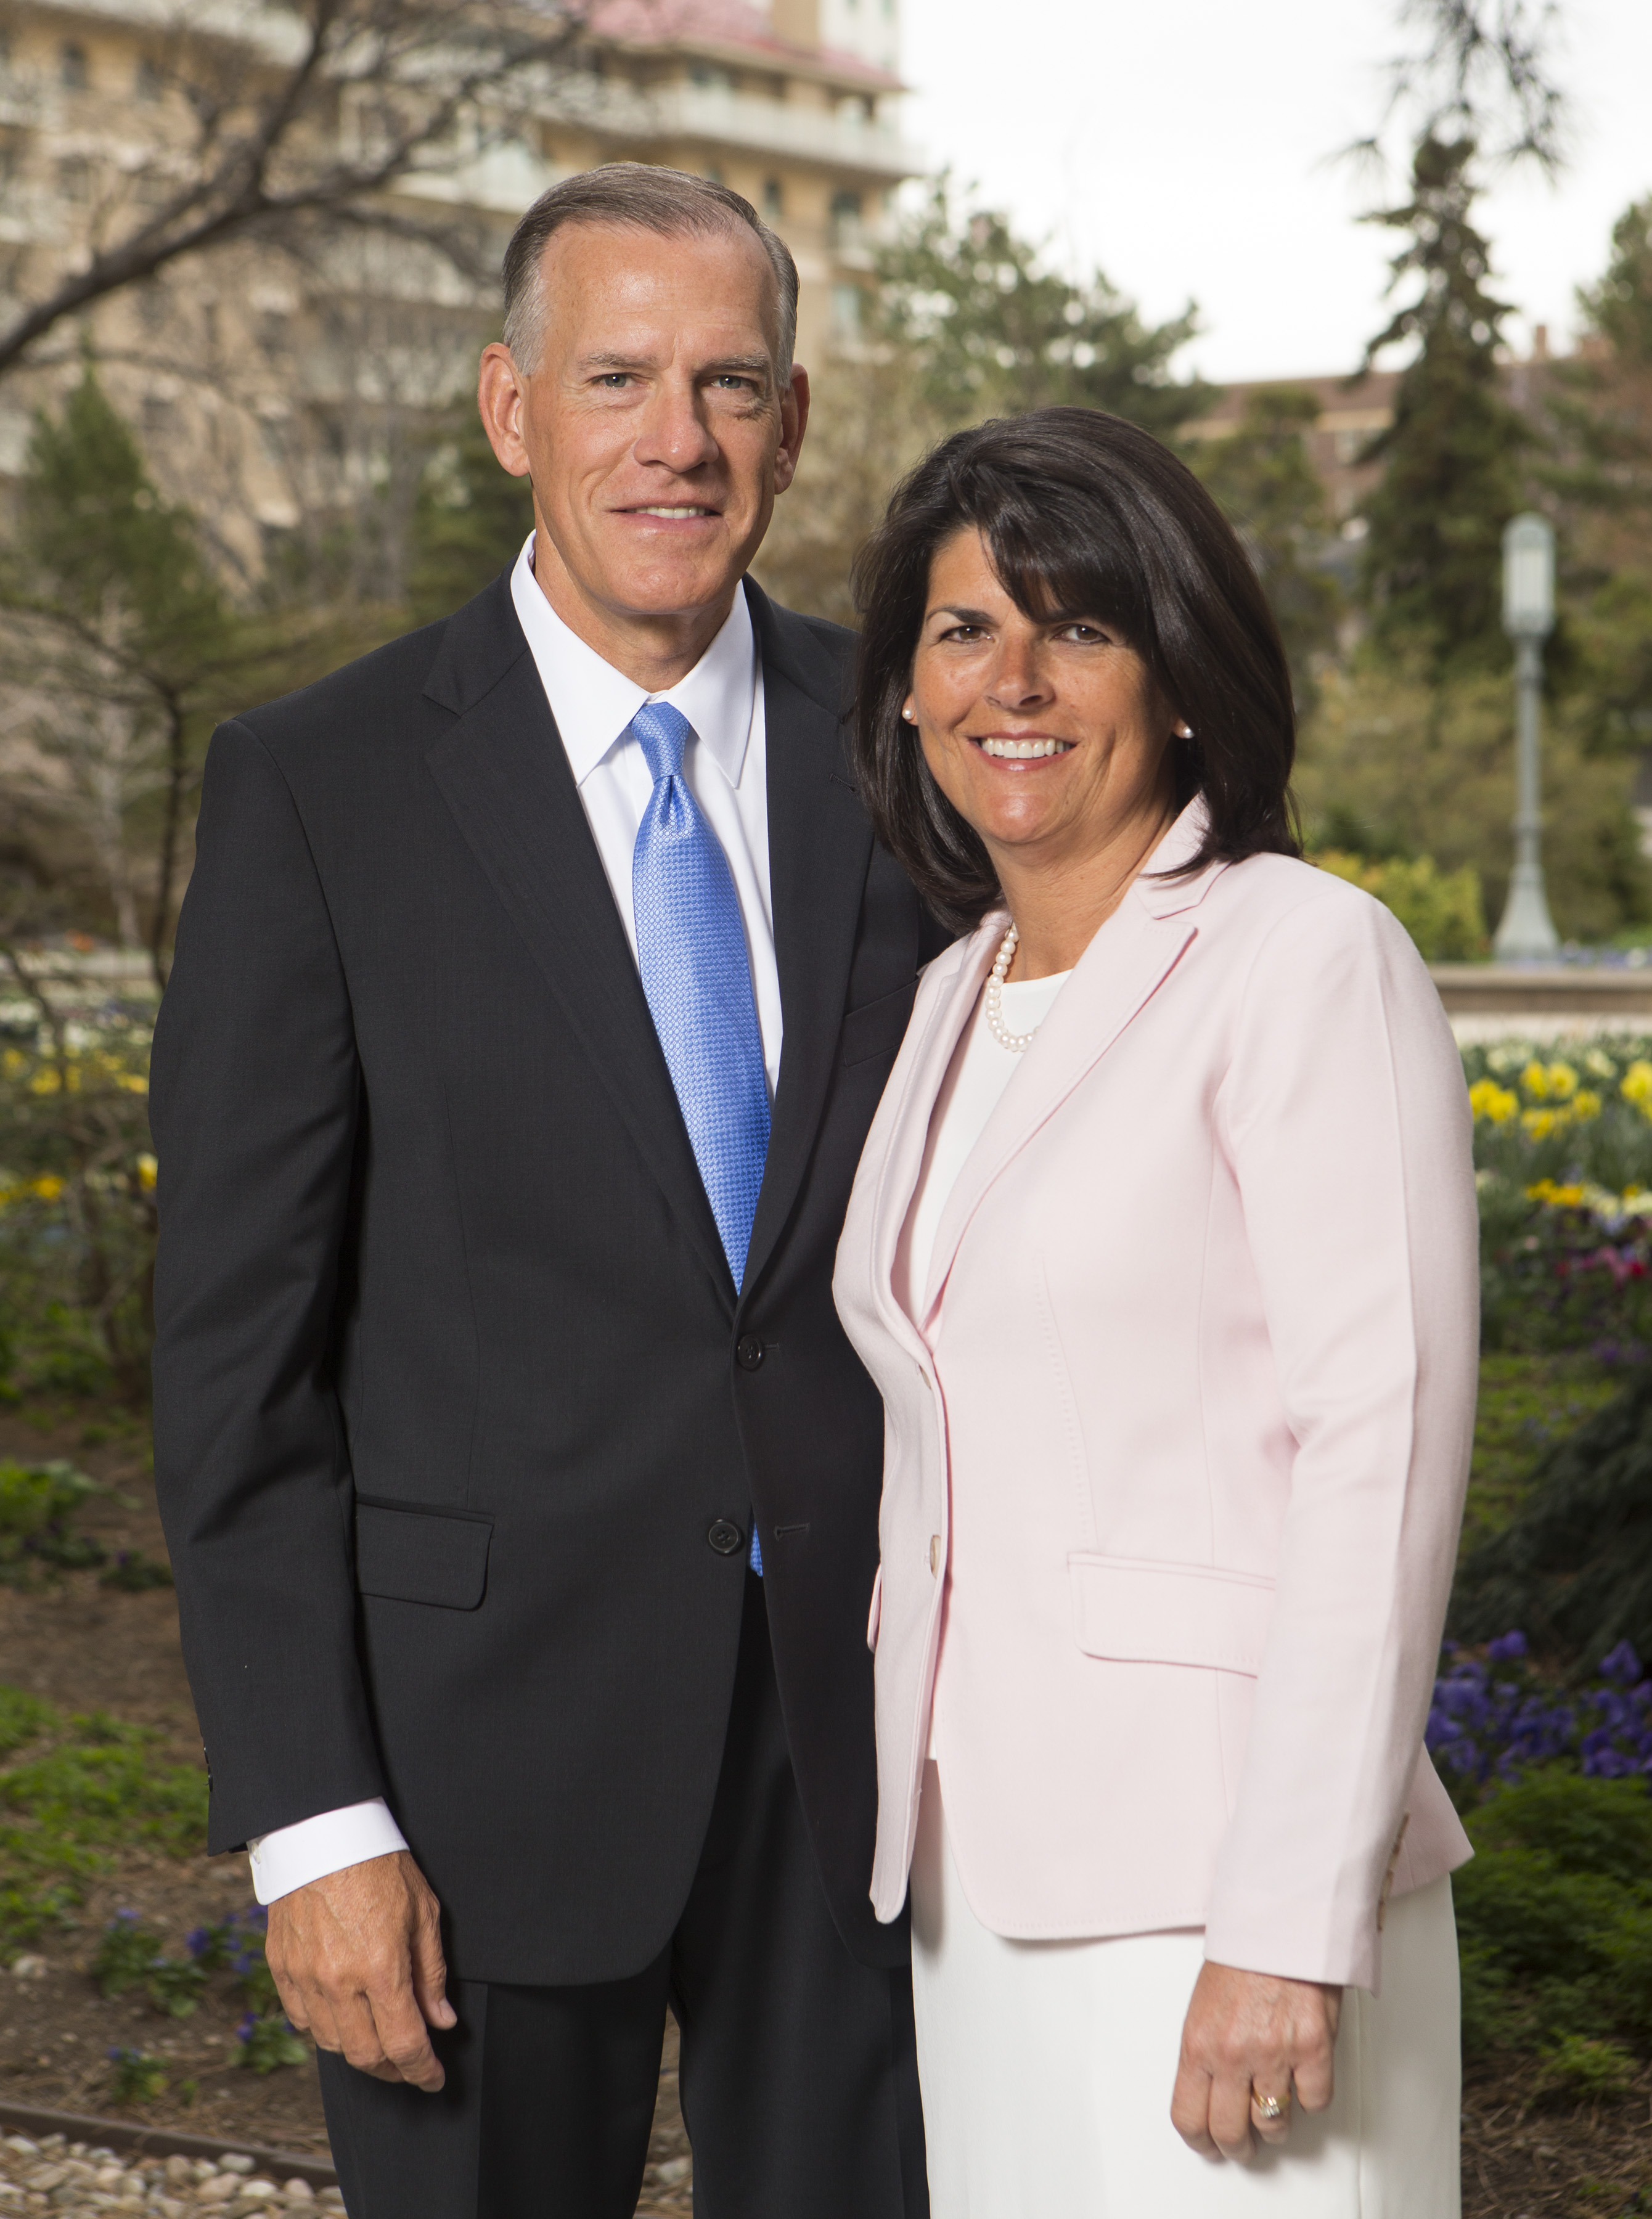 Elder Steven R. Bangerter, General Authority Seventy, and his wife, Sister Susann A. Bangerter, in Salt Lake City on Monday, April 2, 2018.